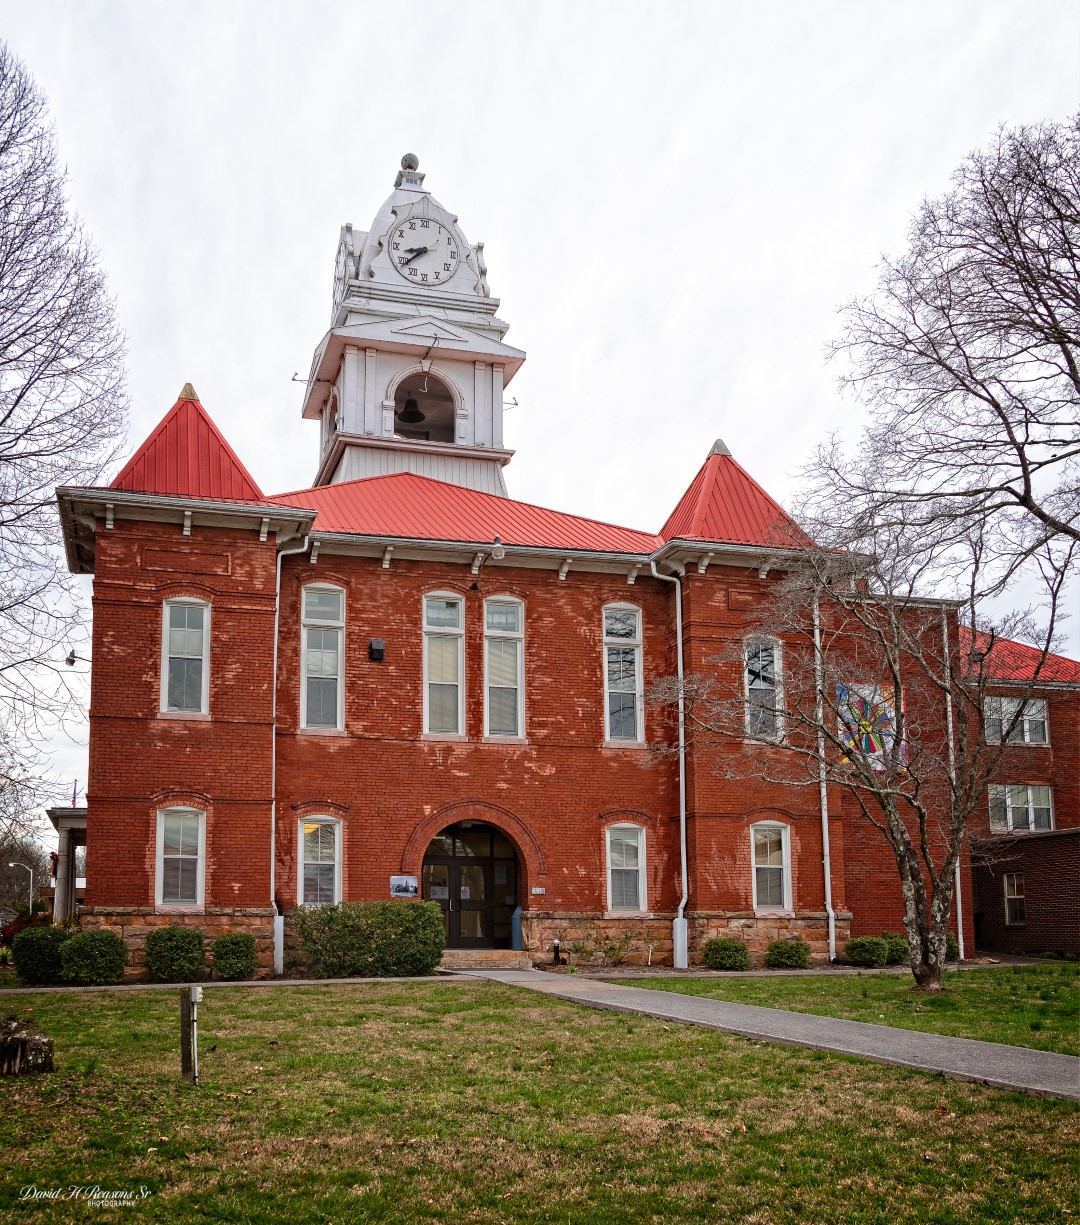 The current Richardsonian Romanesque-style courthouse was built in 1904